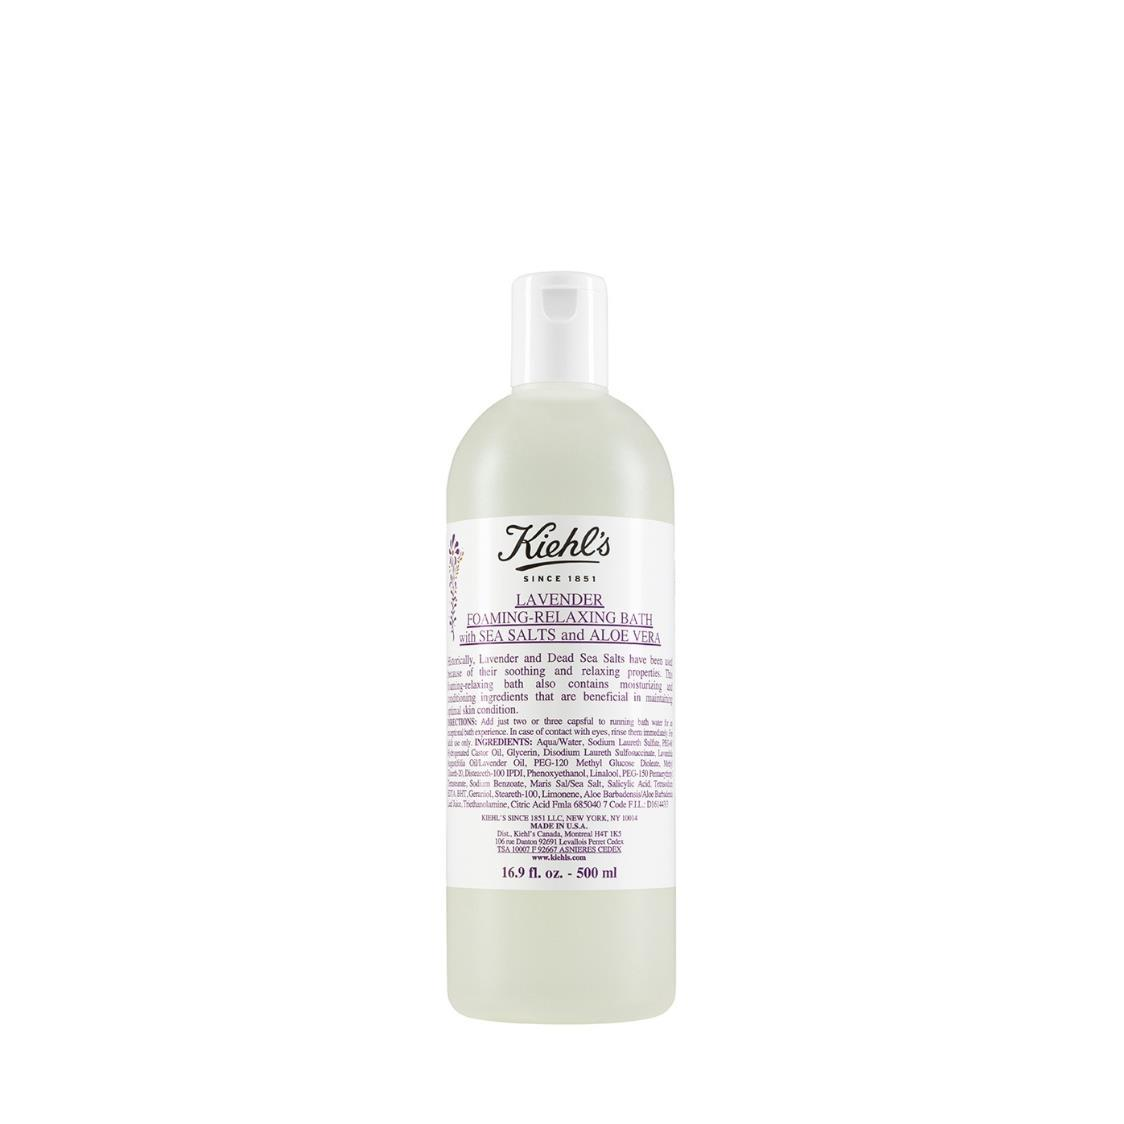 Kiehls Since 1851 Lavender Foaming-Relaxing Bath with Sea